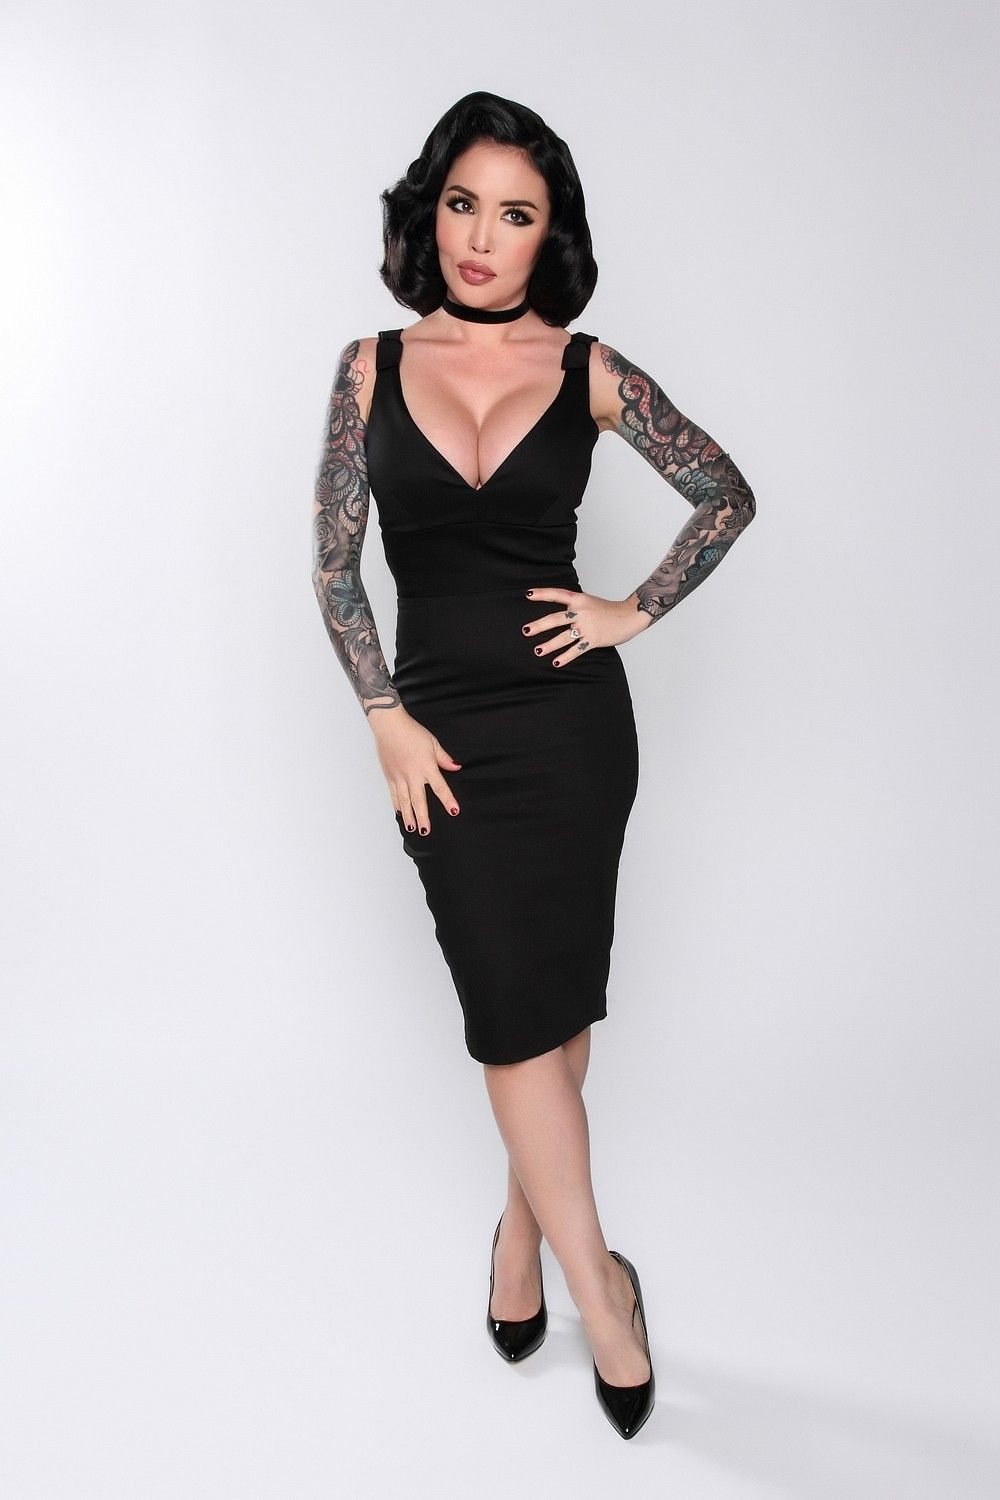 Leanna Wiggle Dress in Black   Wiggle dress, Plunging neckline and ...